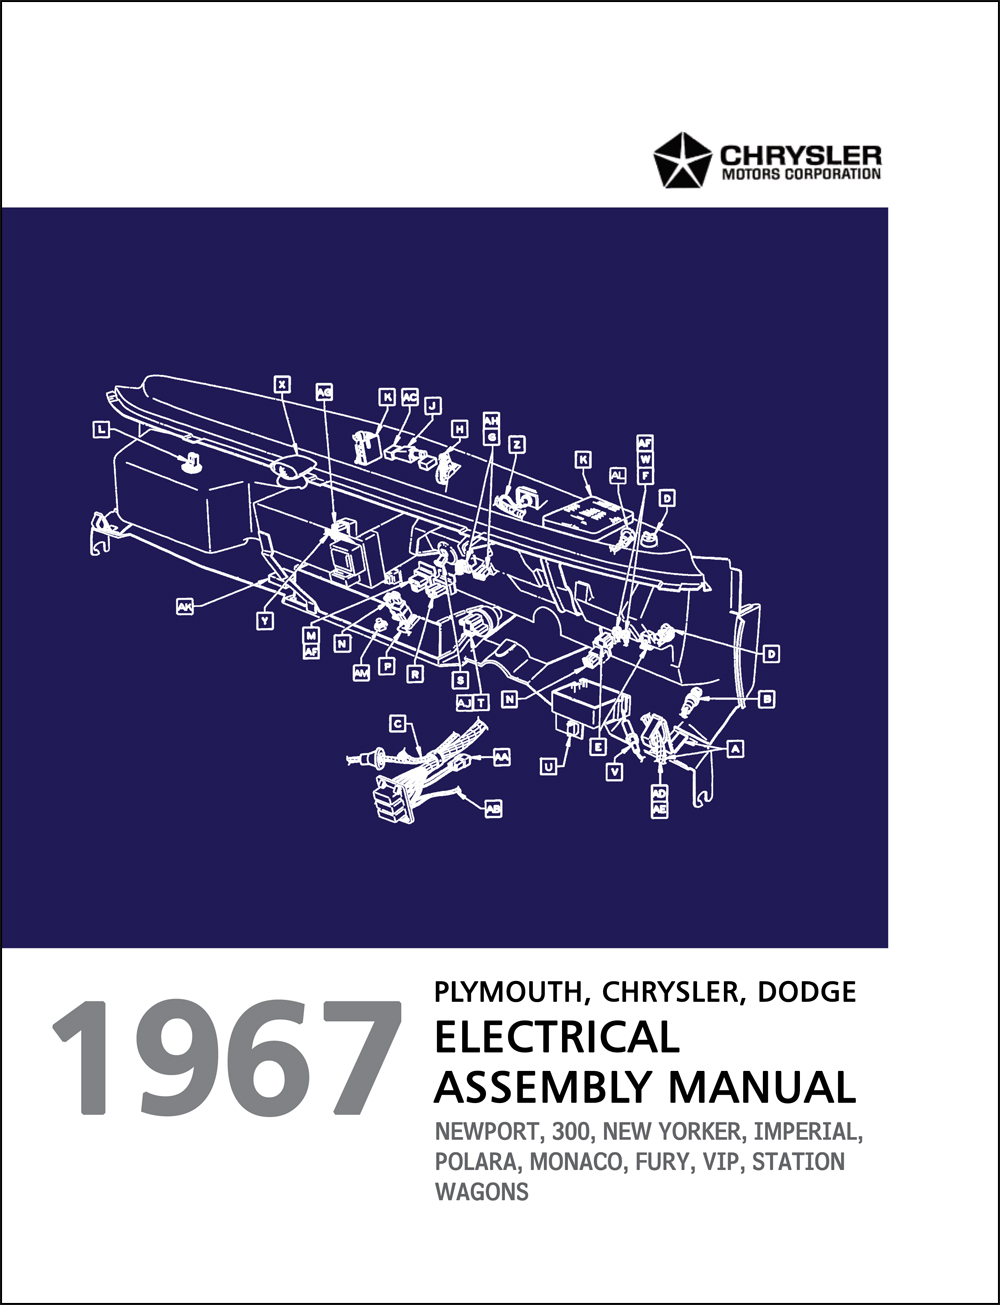 1967 Chrysler, Dodge, and Plymouth Big Car Electrical Assembly Manual Reprint